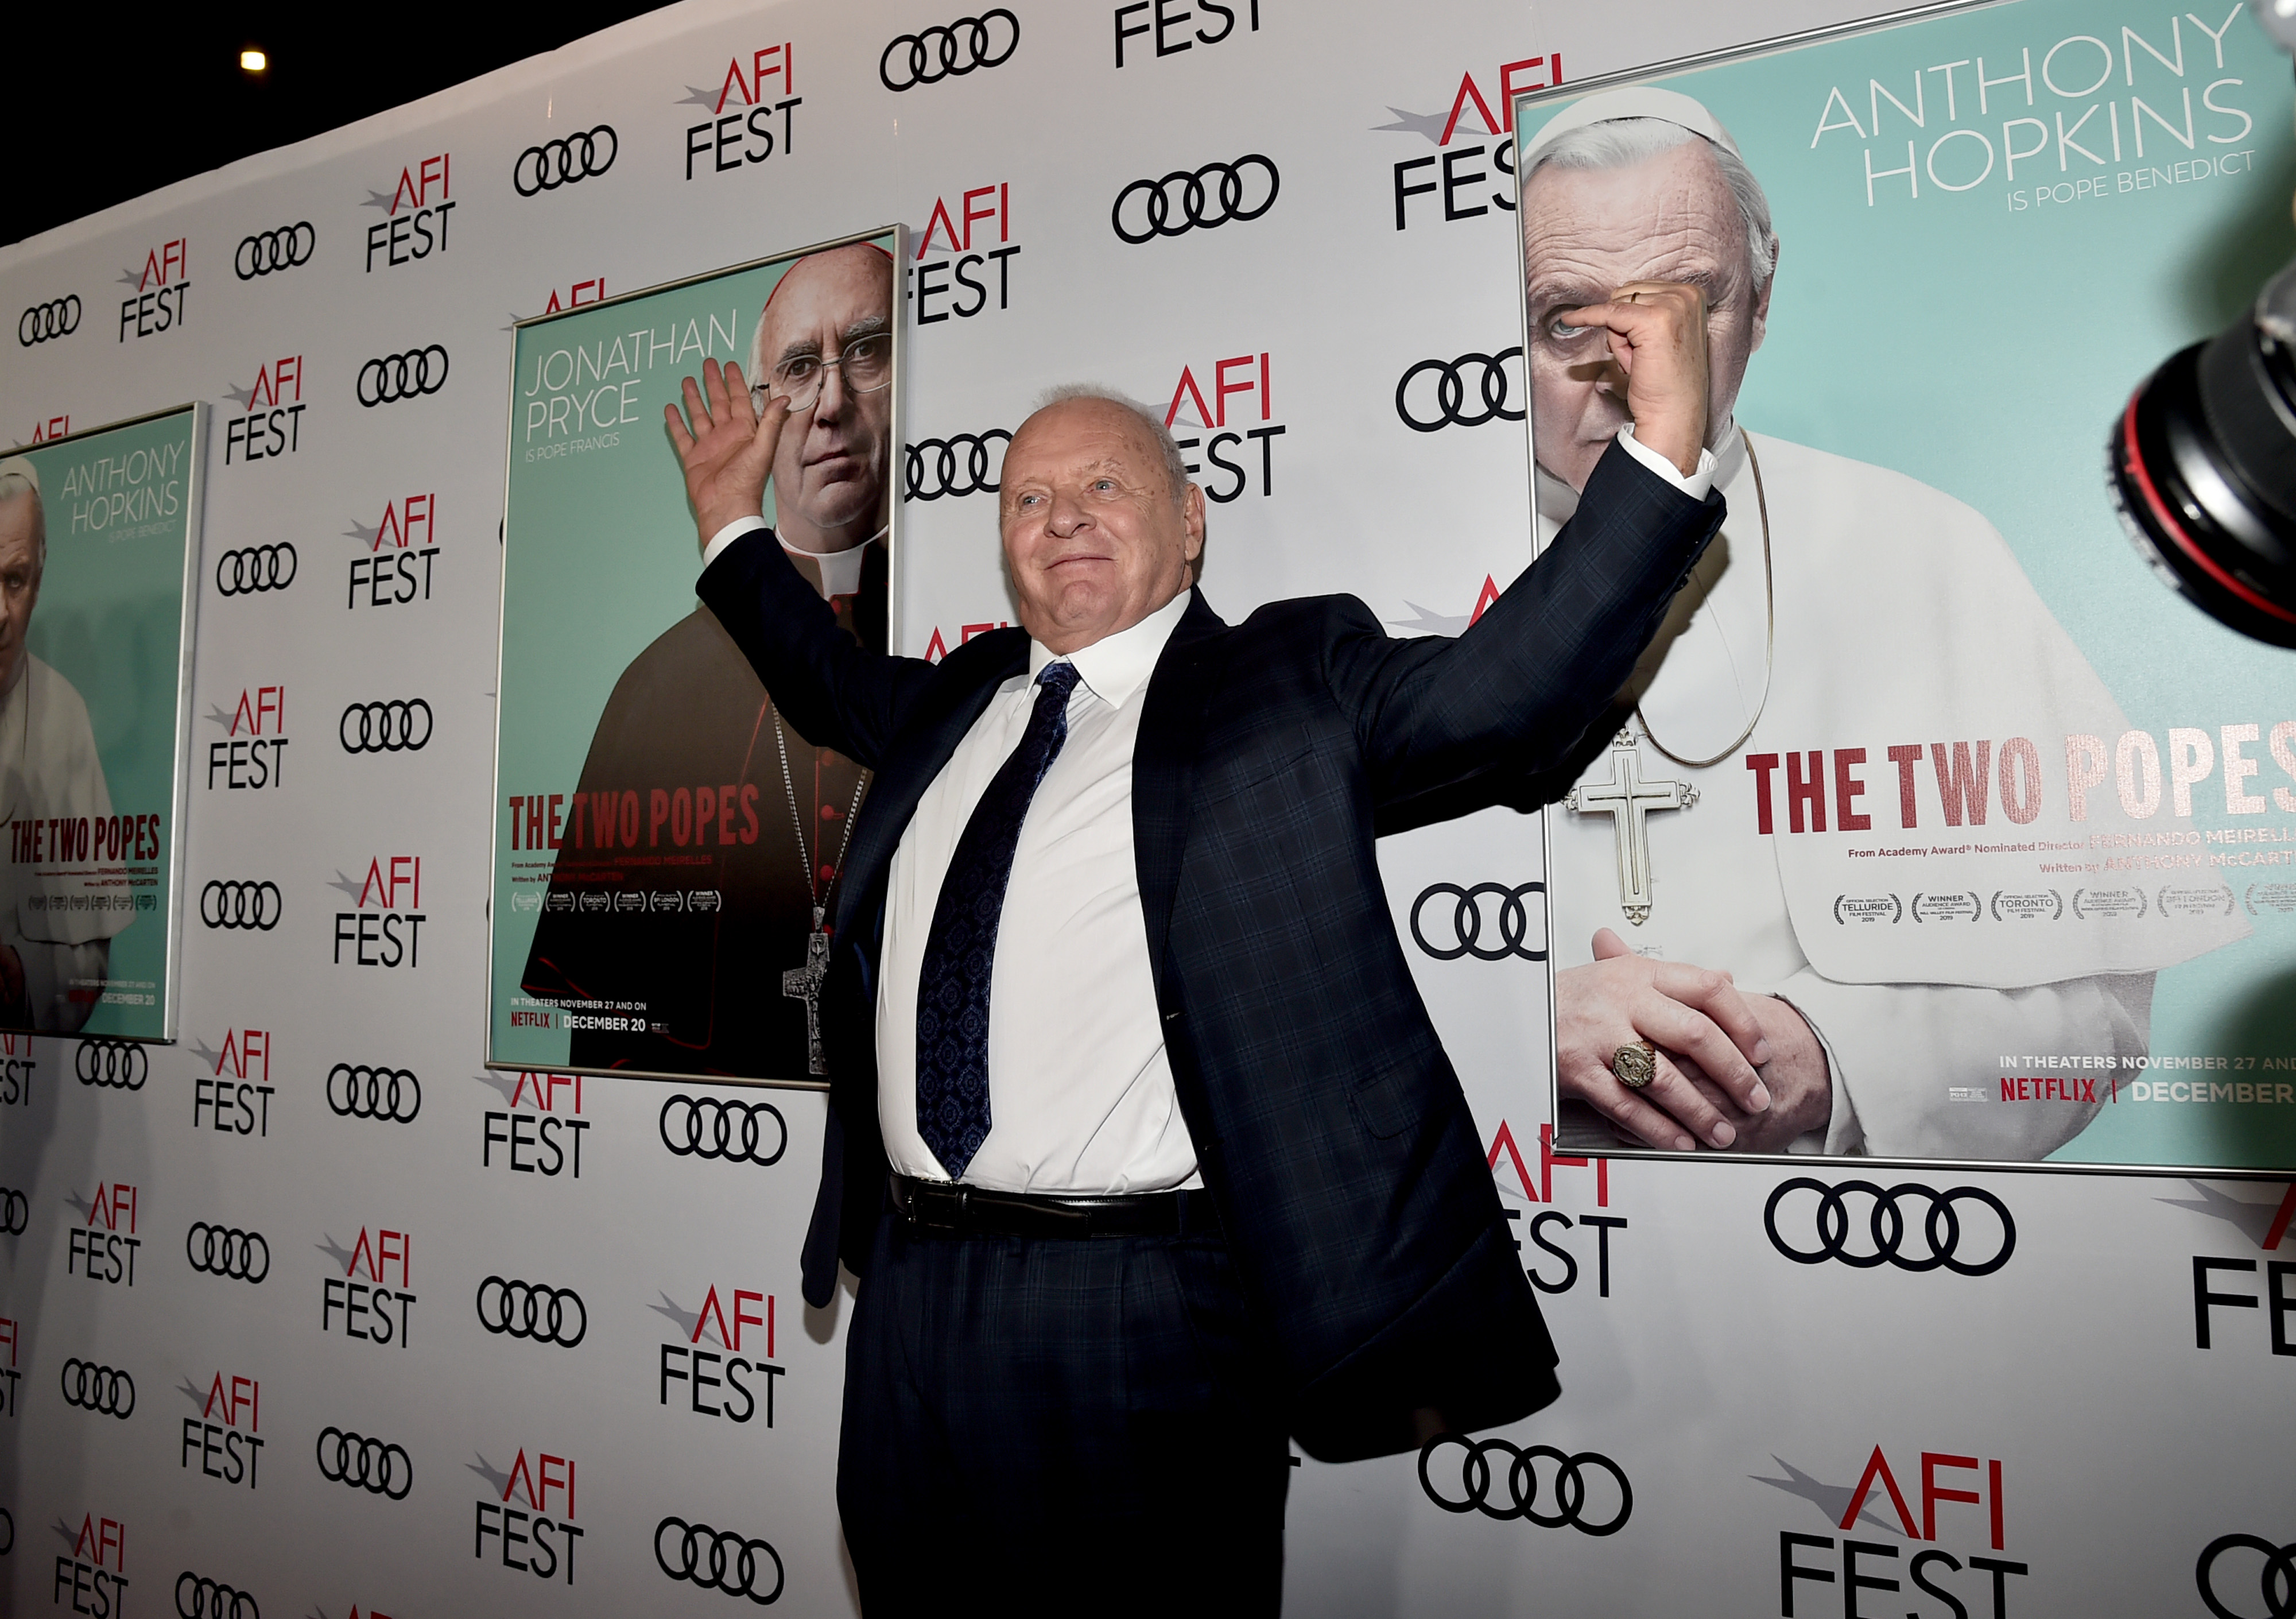 Anthony Hopkins at an event for The Two Popes (2019)